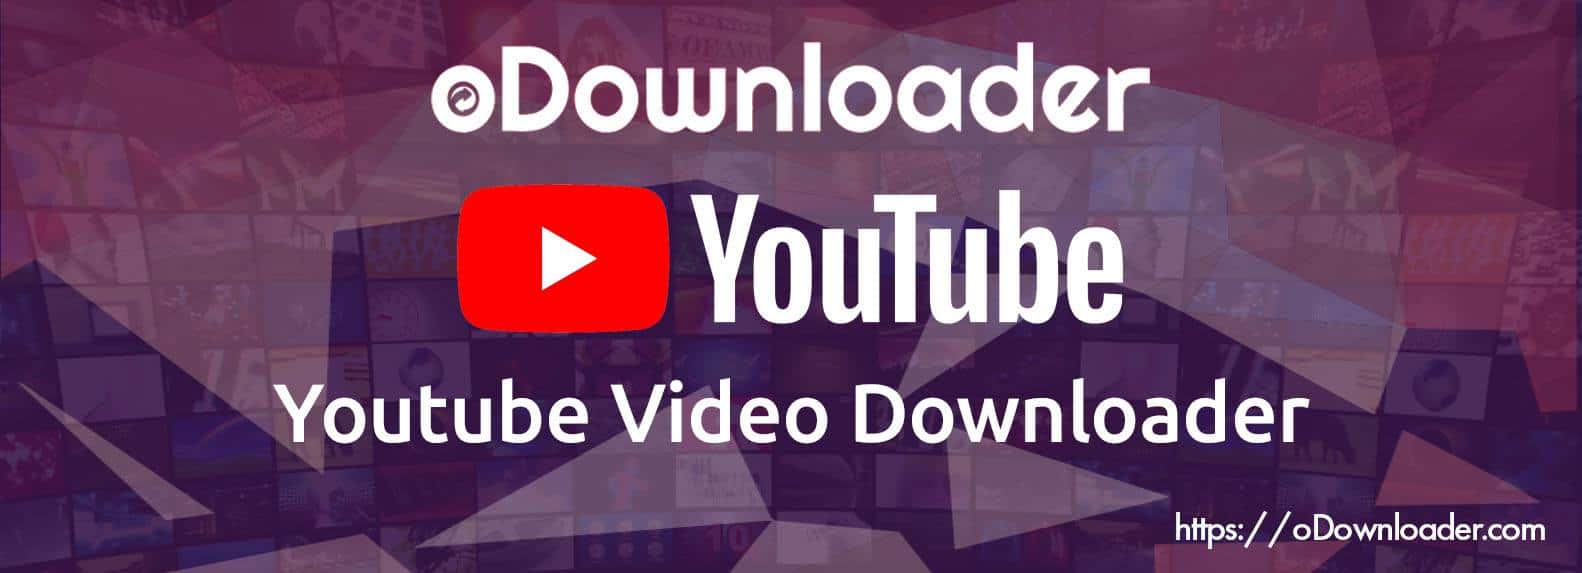 YT Videos Downloader Online MP4 1080p Free 4K HD